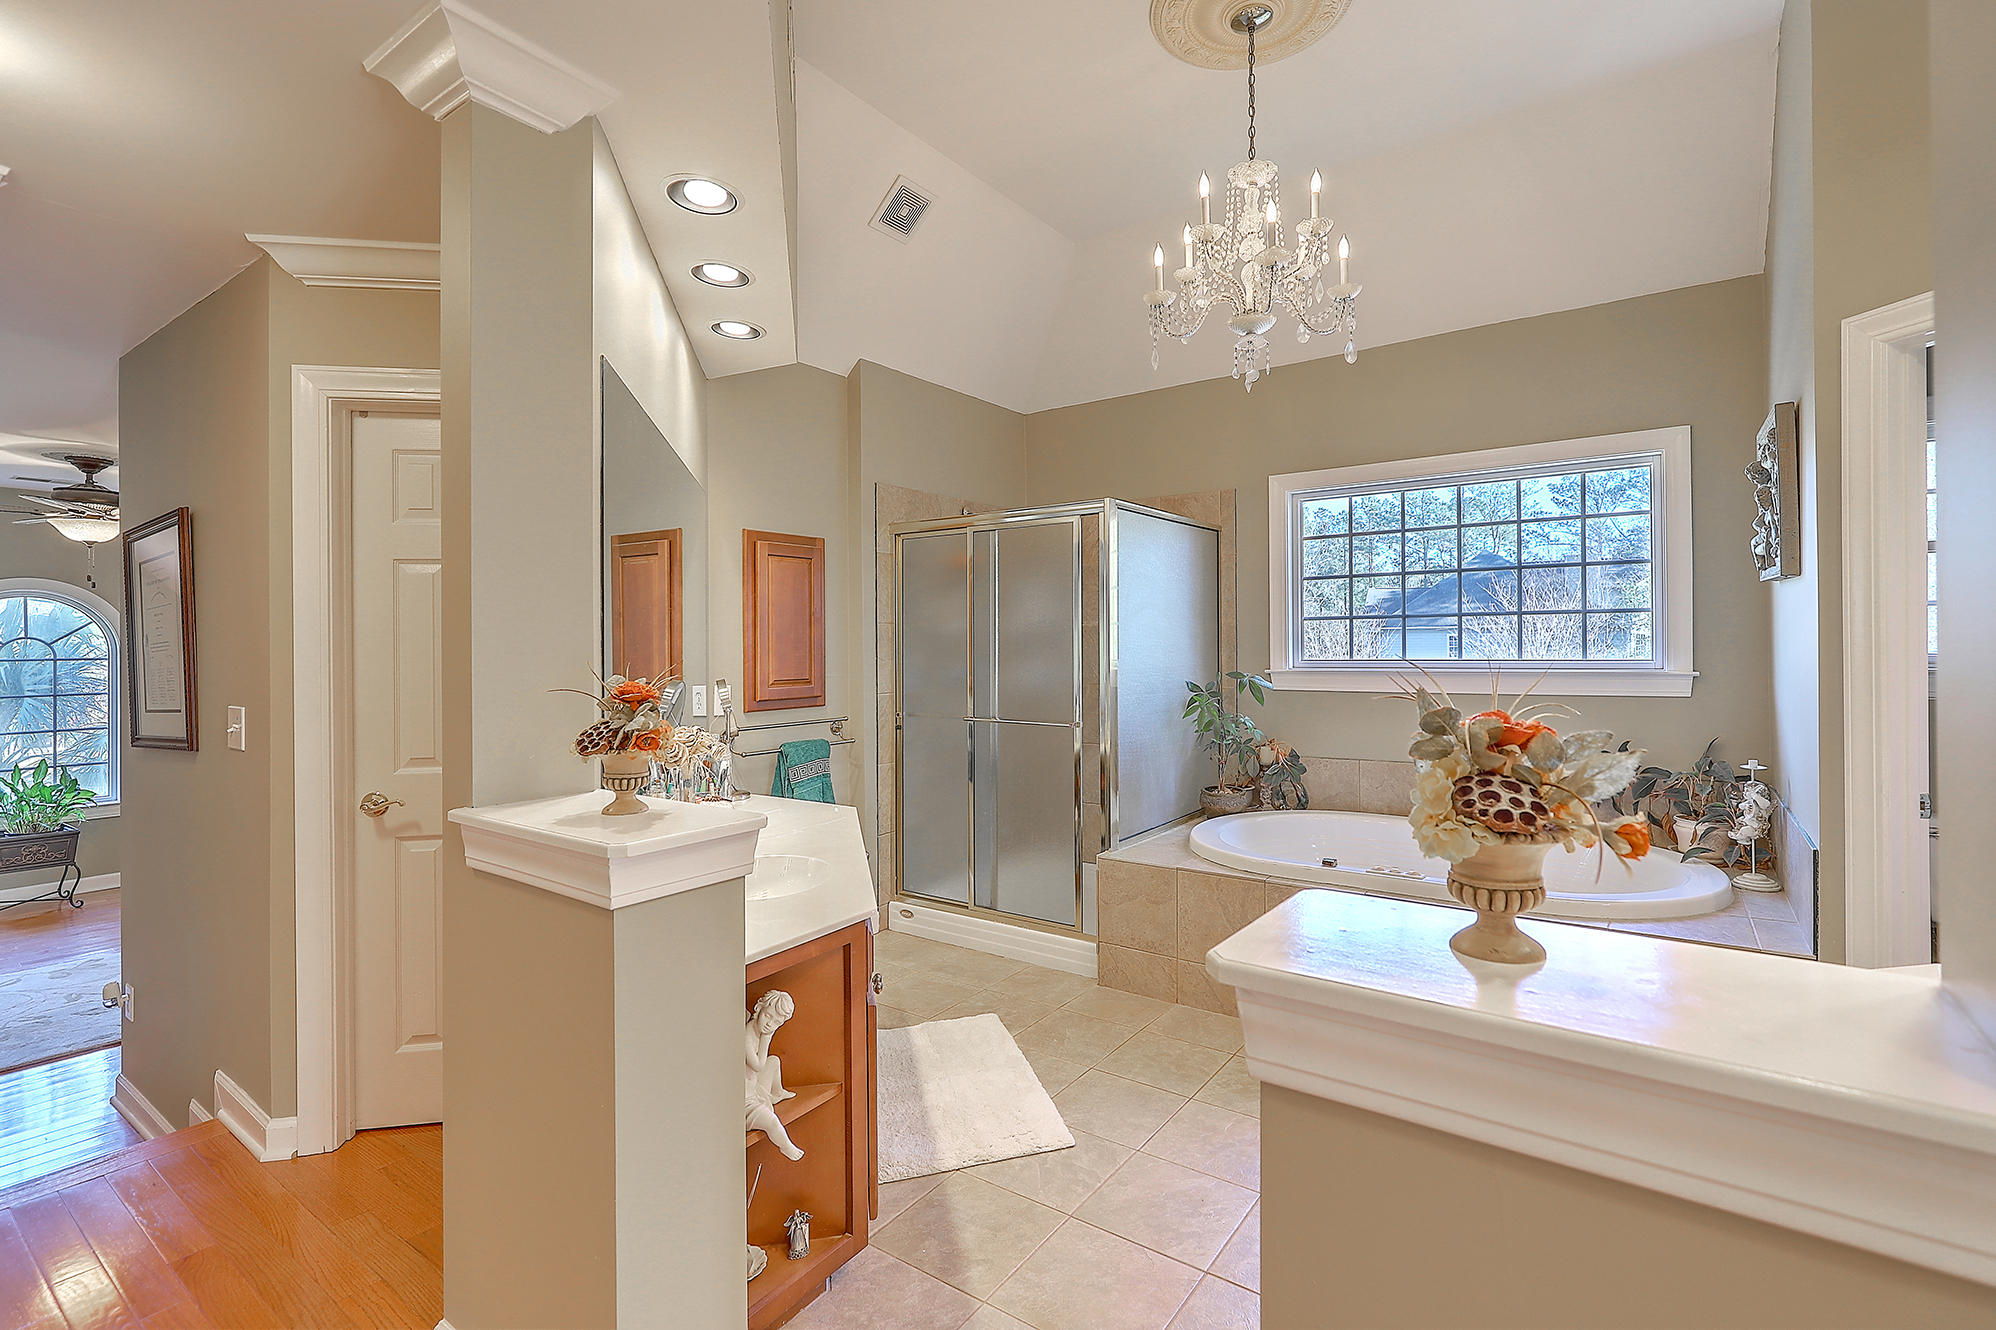 Dunes West Homes For Sale - 1784 Shell Ring Circle, Mount Pleasant, SC - 30